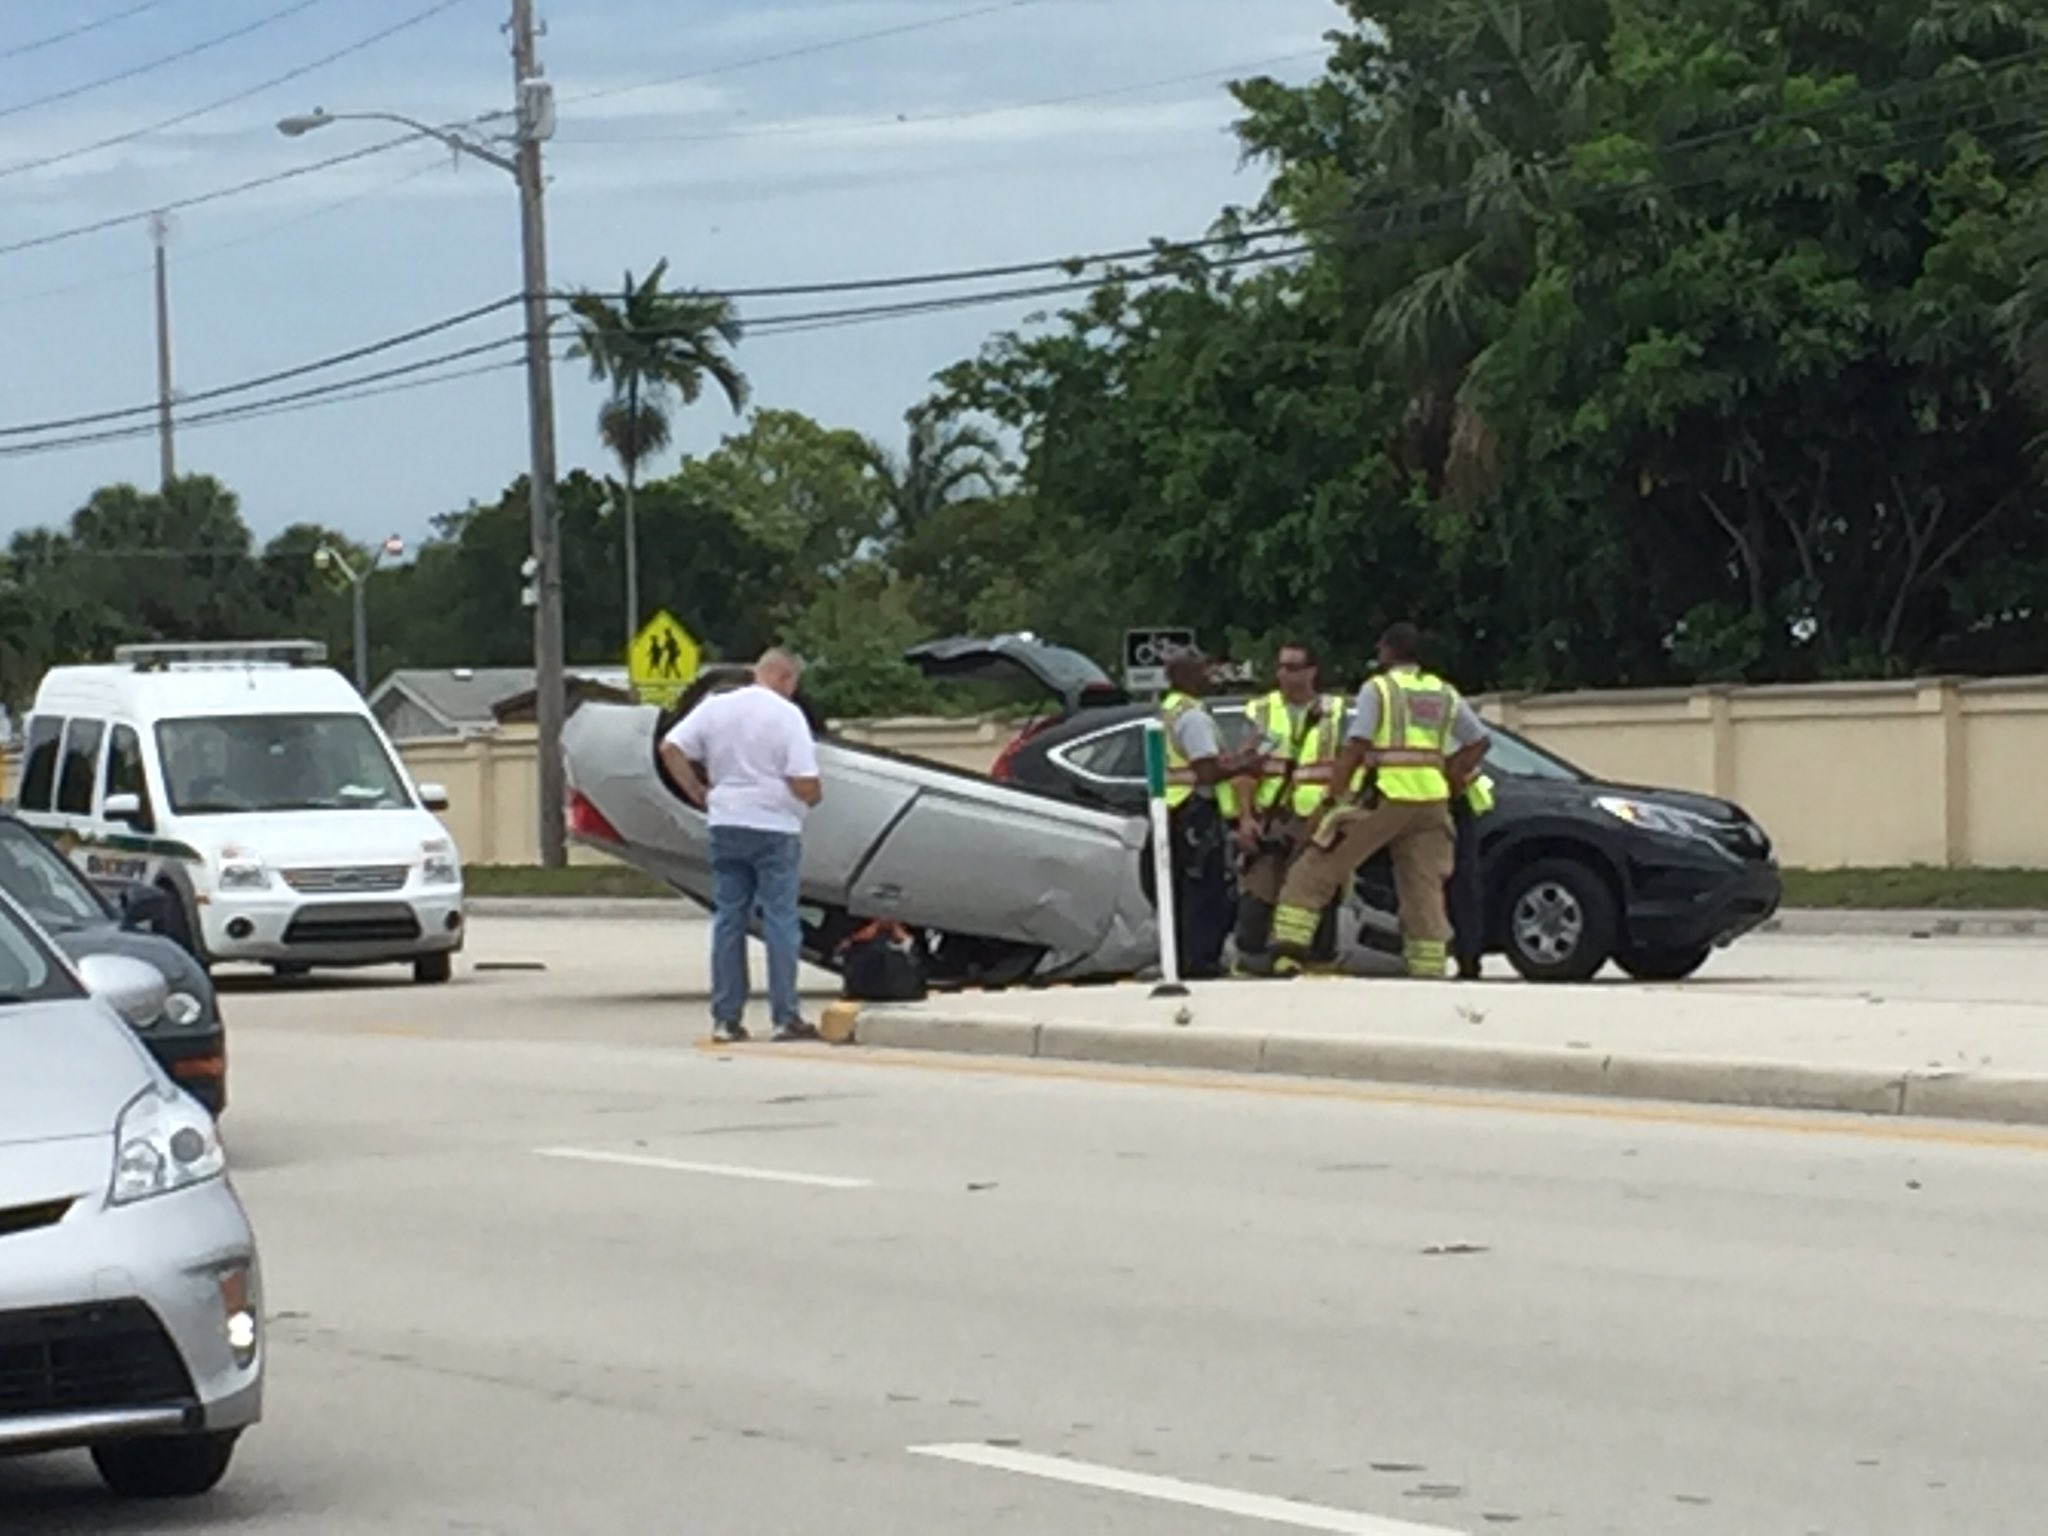 Crews on scene of vehicle crash in Riviera Beach